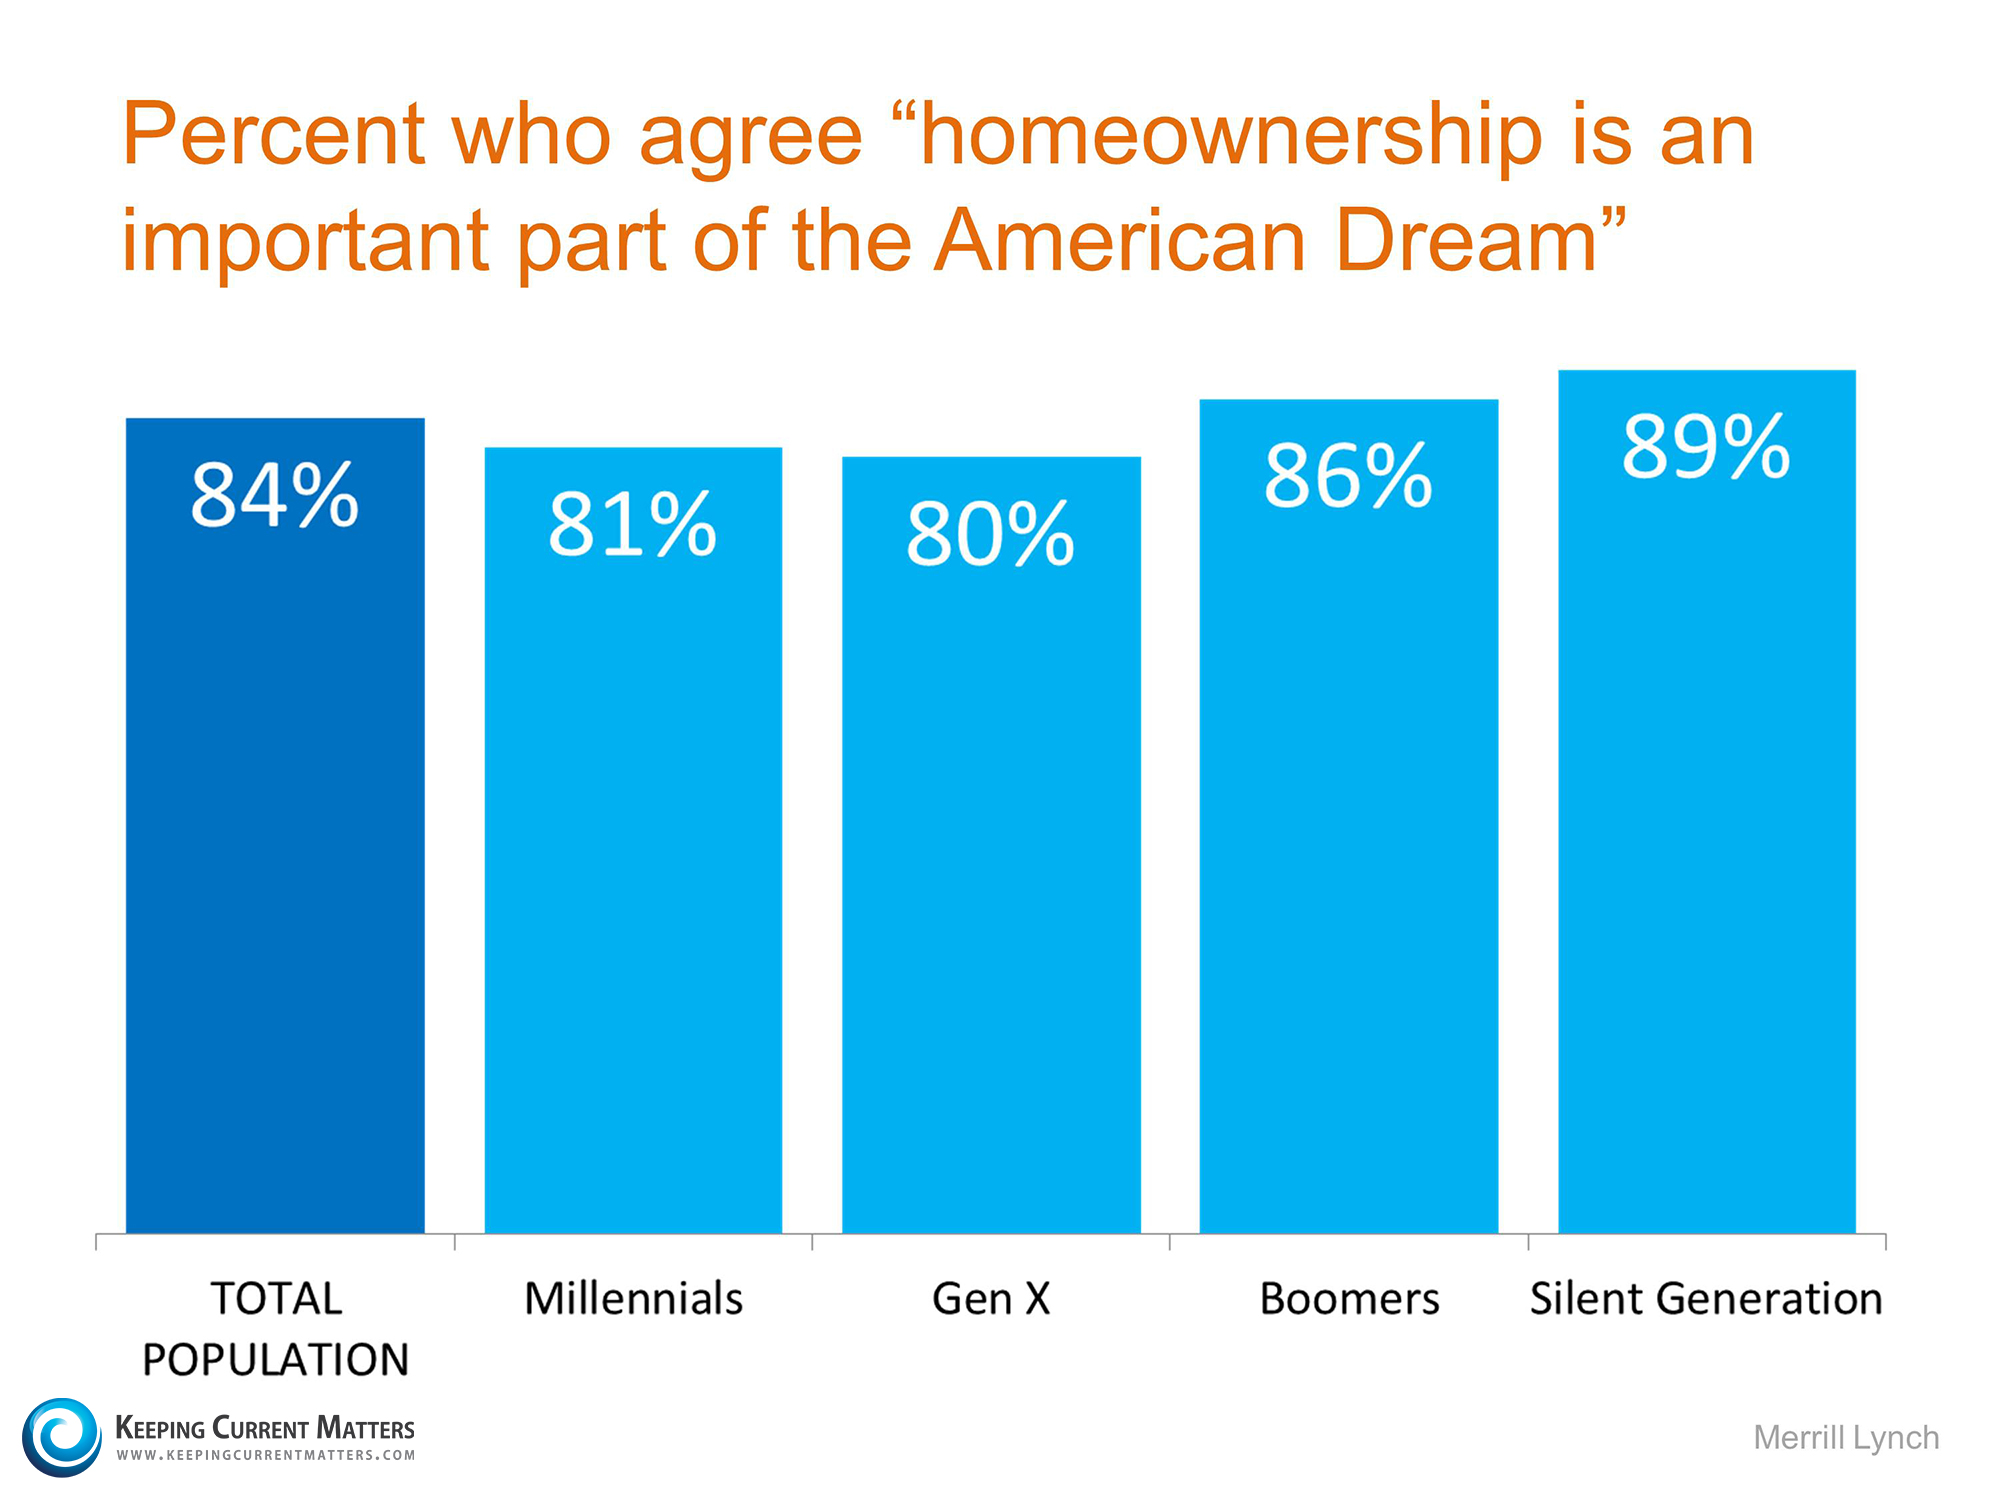 Homeownership is an important part of the American Dream | Keeping Current Matters